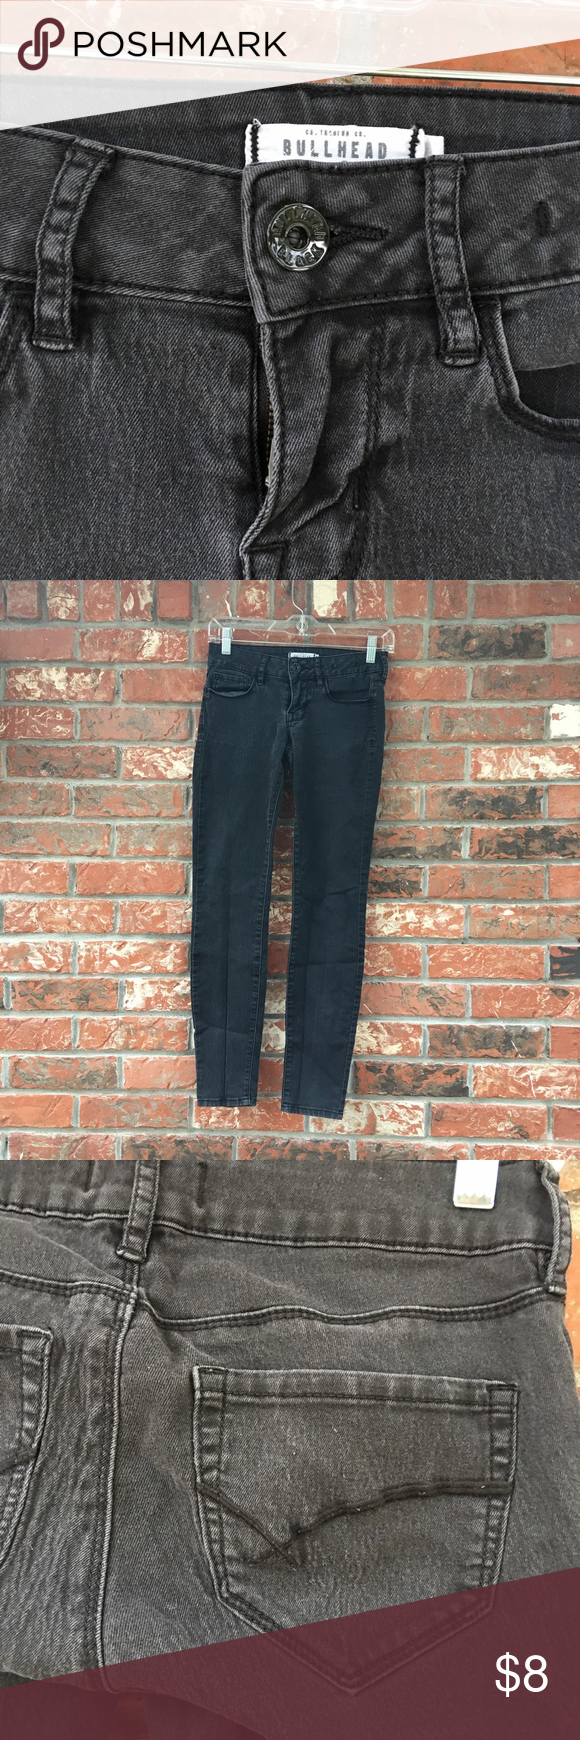 Dark Bullhead Jeans Black/Grey Bullhead Jeans• Really Soft• Good Condition• Washed out• Some wear•Stretchy Bullhead Jeans Skinny